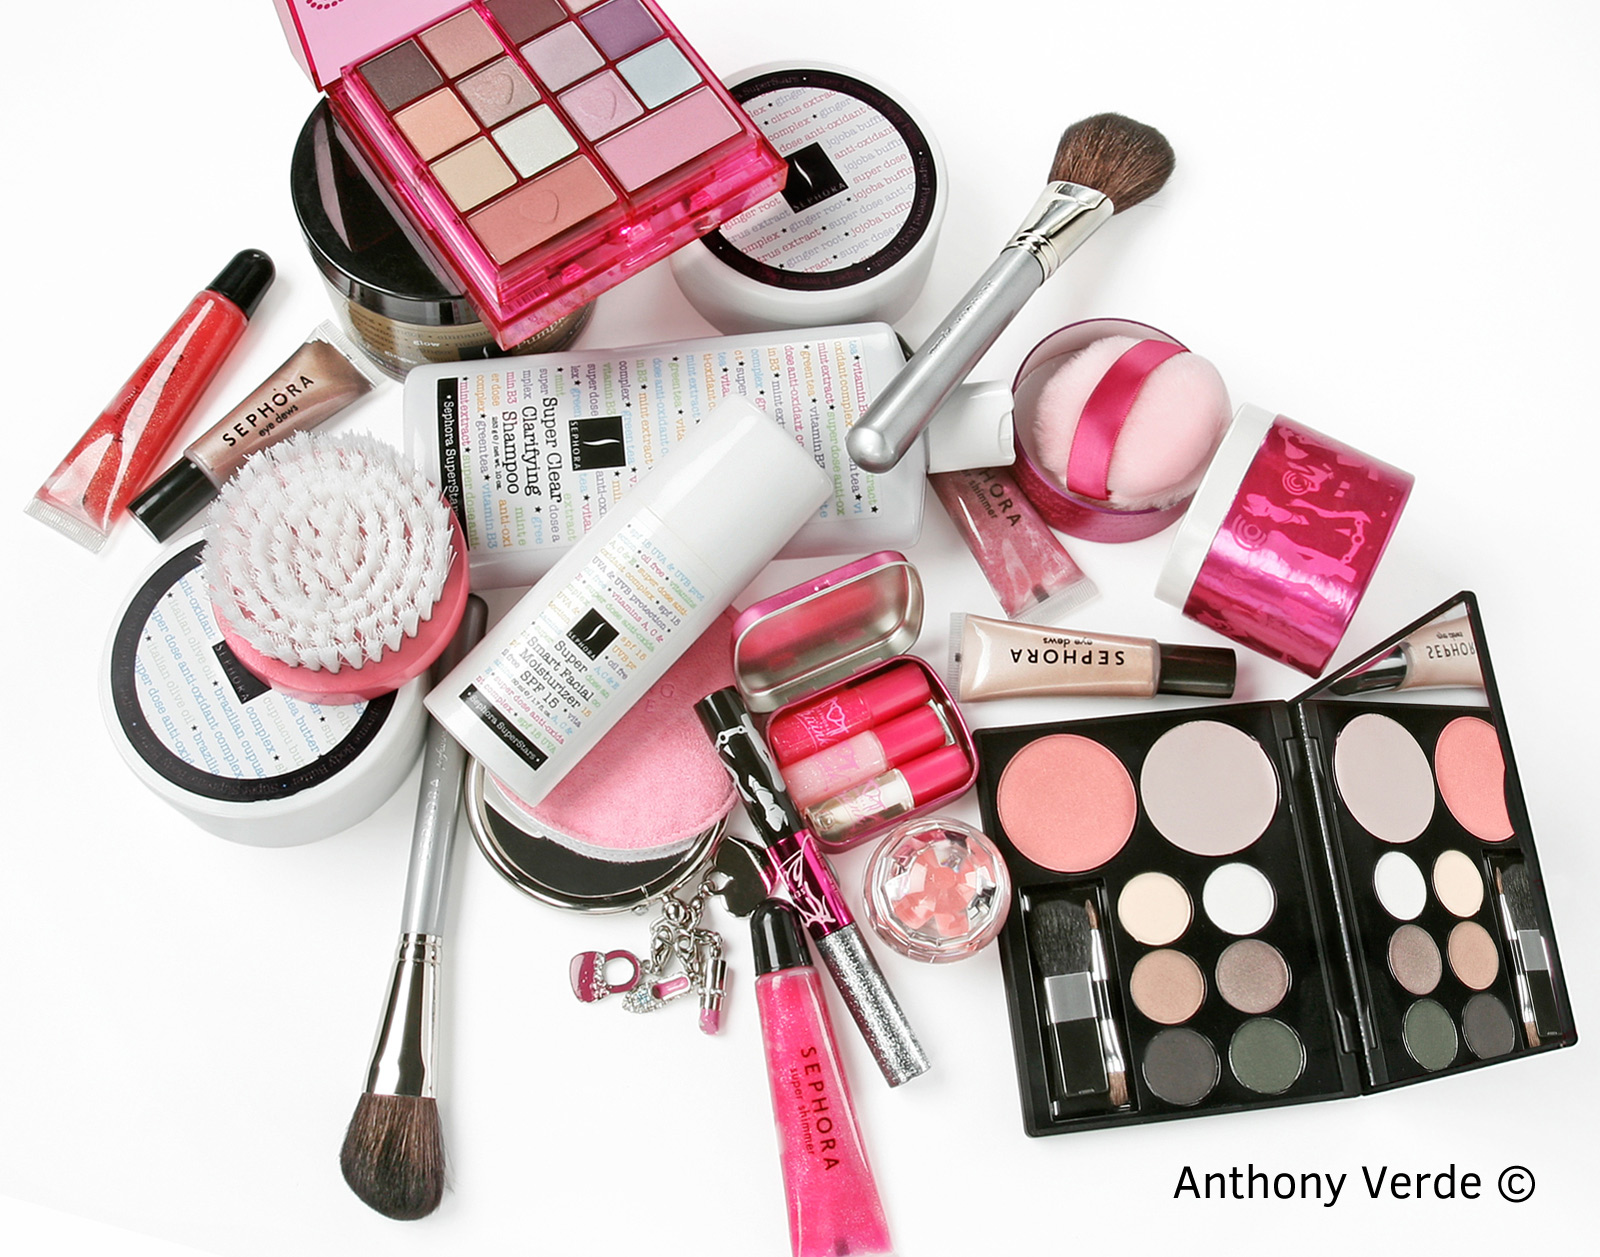 Sephora-make-up-still-life-photography